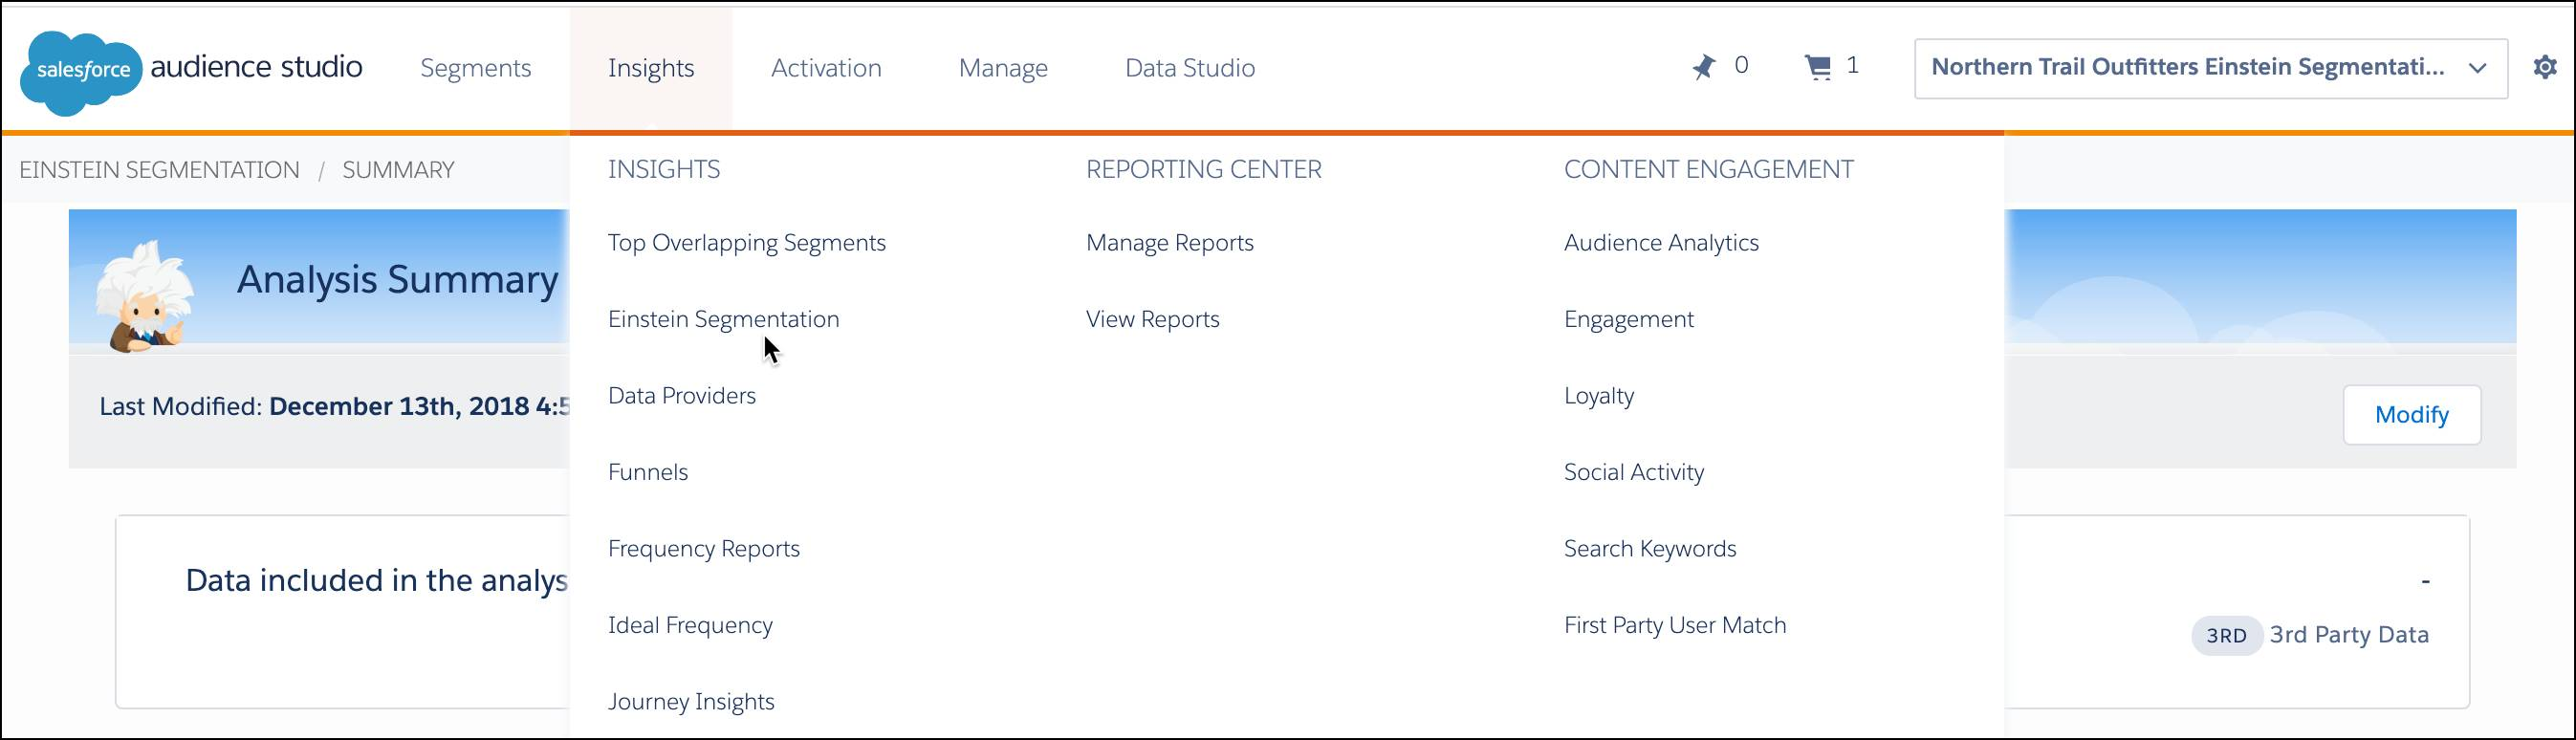 Audience Studio home page with Einstein Segmentation selected from the Insights dropdown menu.